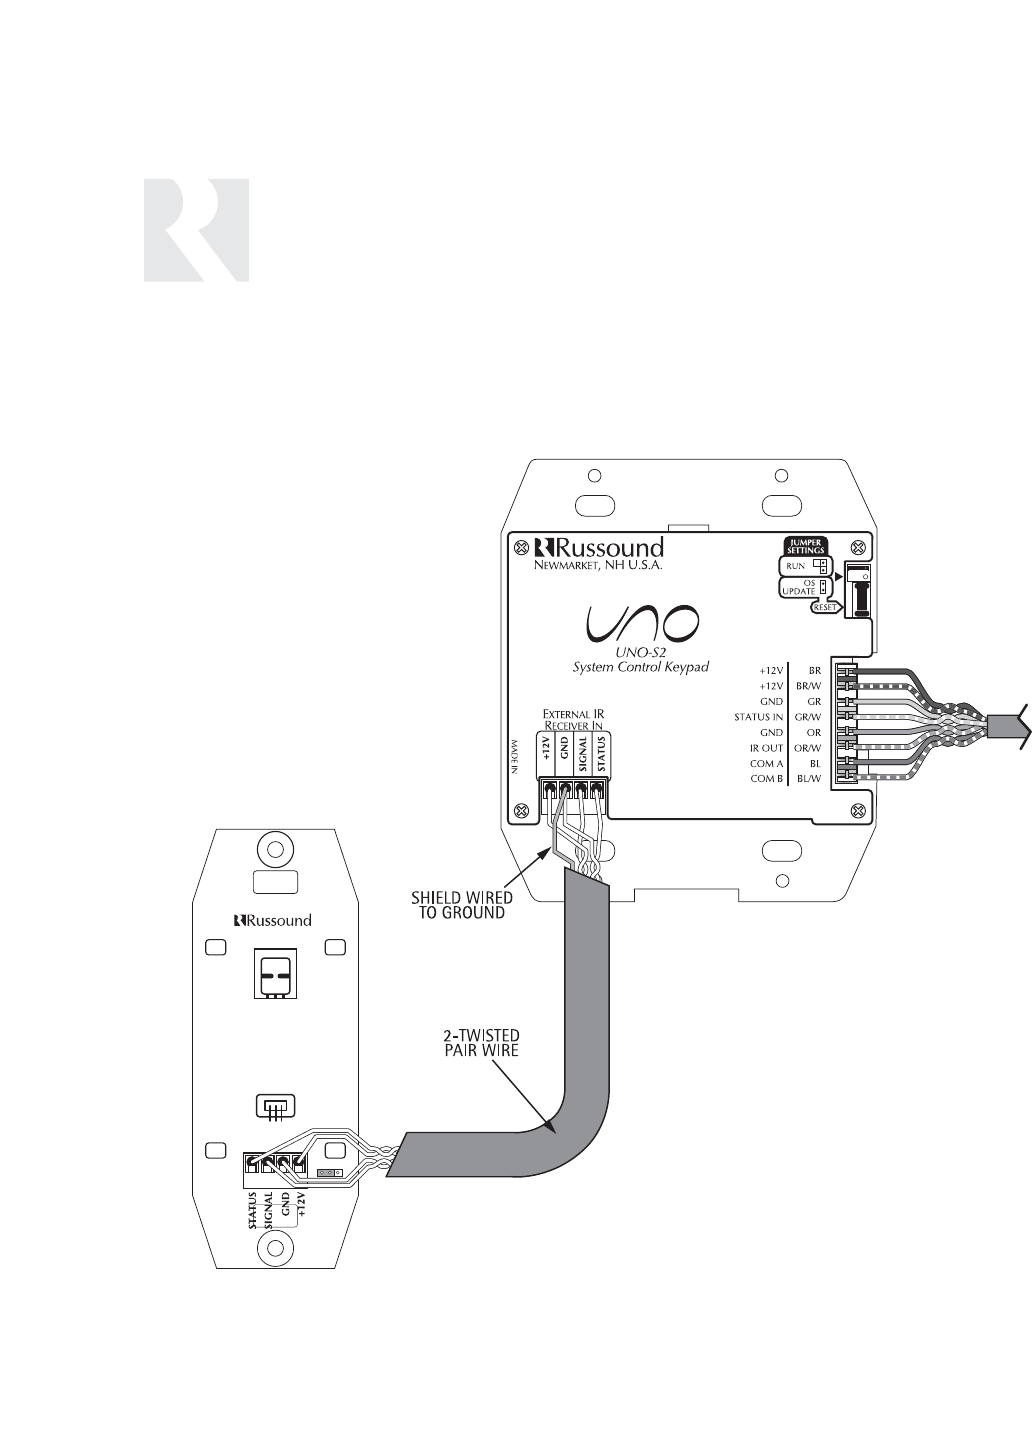 Speakercraft Ir Receiver Wiring Diagram : 39 Wiring